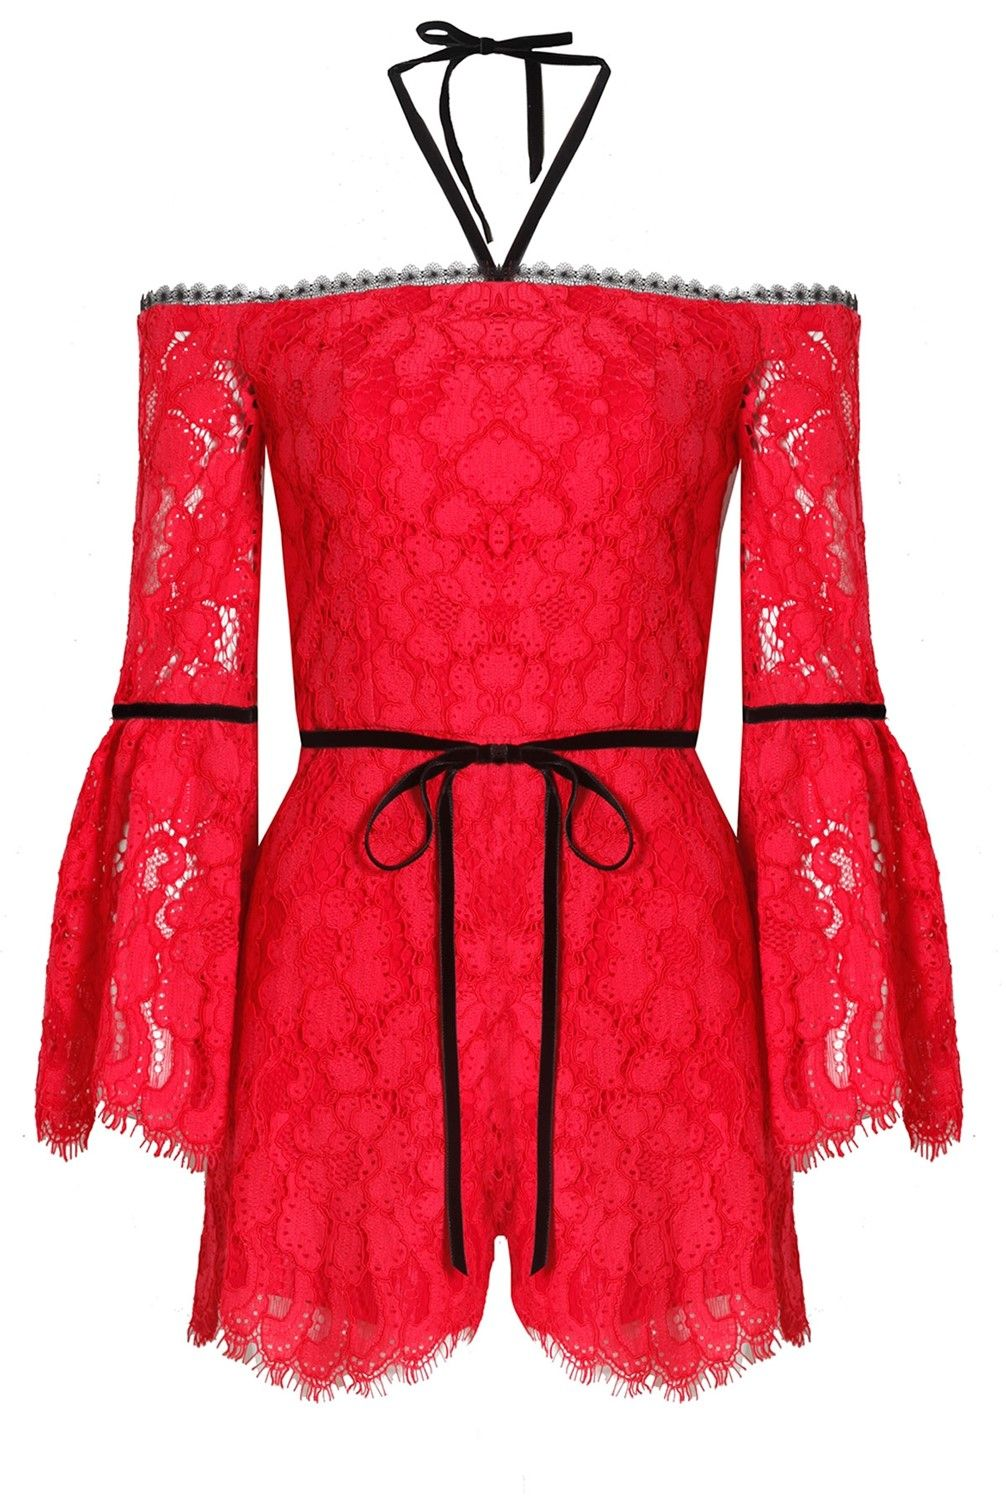 821a6723fedc Alexis Layla Romper Red Lace